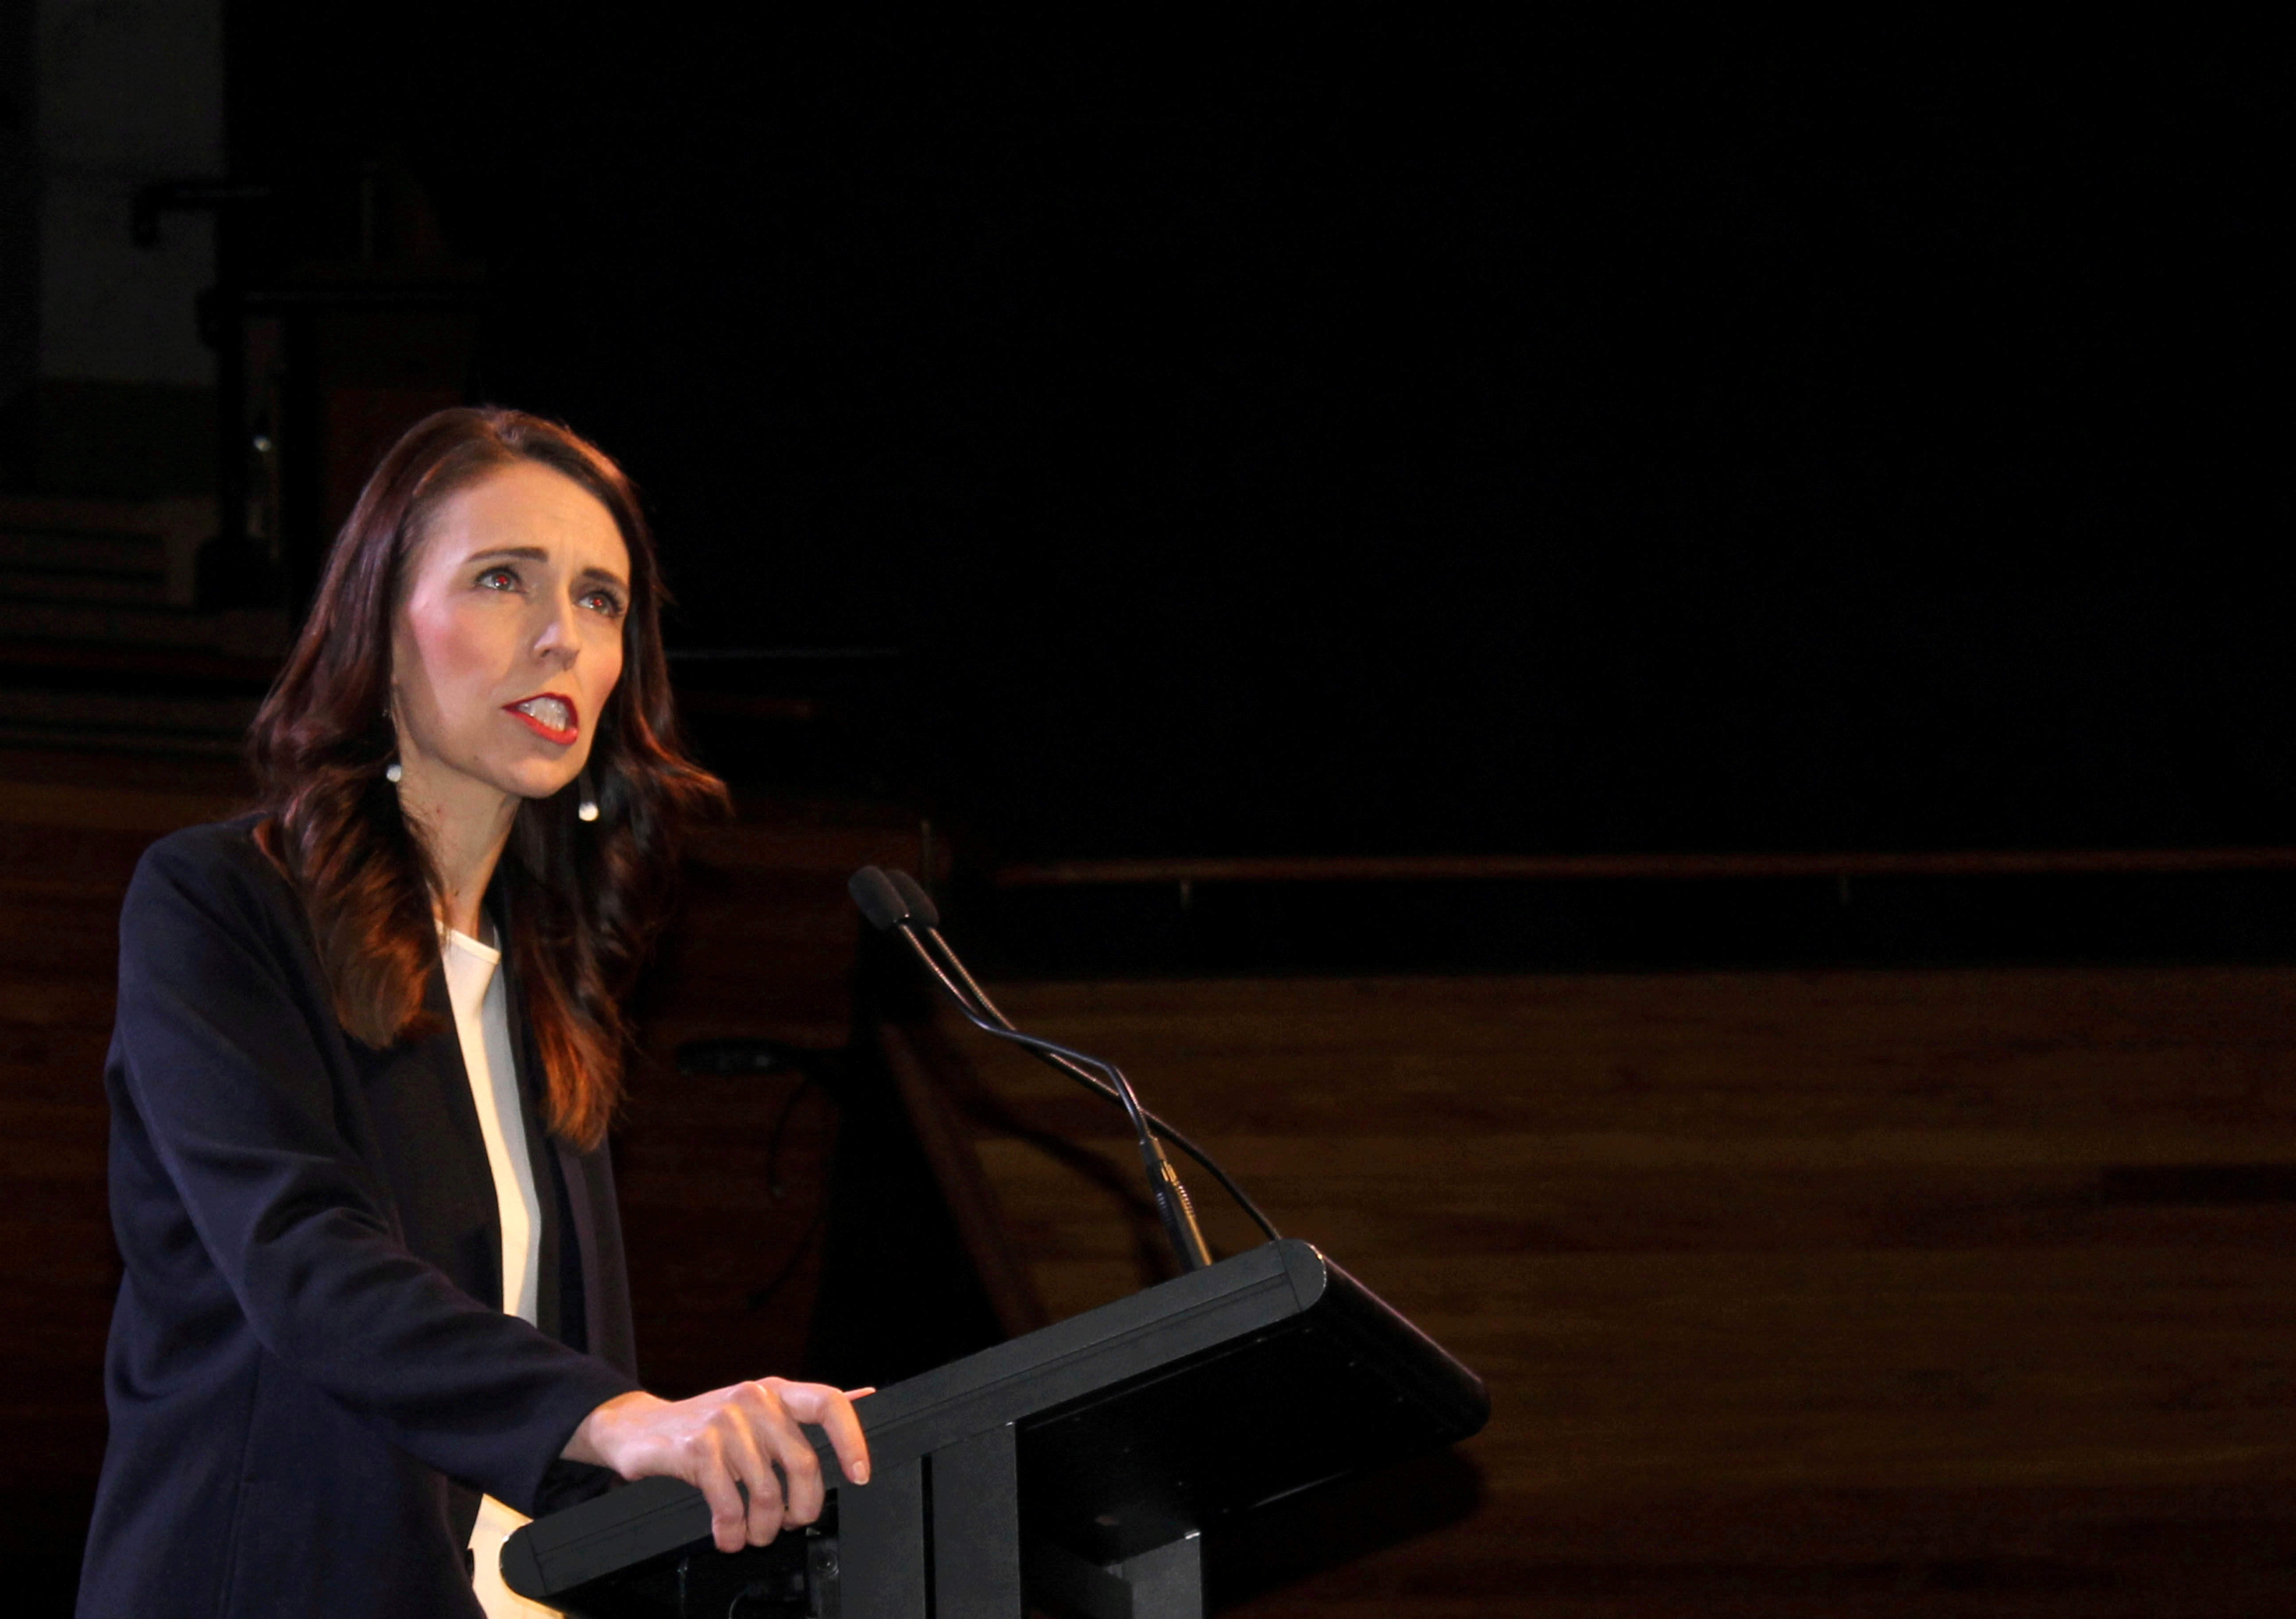 Prime Minister Jacinda Ardern addresses supporters at a Labour Party event in Wellington, New Zealand, October 11, 2020. REUTERS/Praveen Menon/File Photo